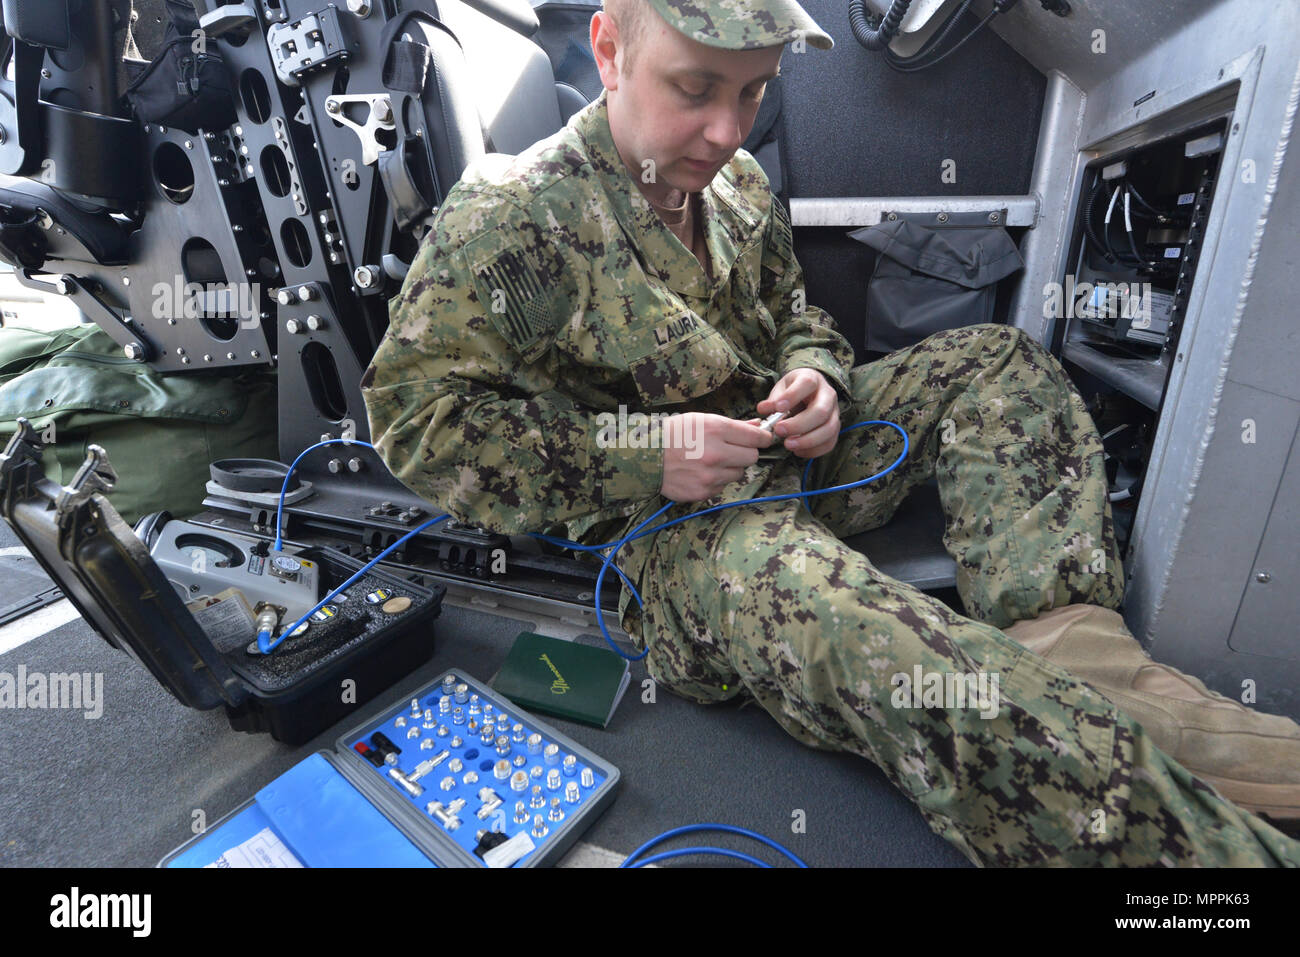 U.S. Coast Guard Caleb Laura, from Coast Guard Port Security 309, performs radio maintenance on a 32-foot Transportable Security Boat  during Operation Pacific Reach Exercise 2017 in Pohang, Republic of Korea, April 8, 2017. OPRex17 is a bilateral training event designed to ensure readiness and sustain the capabilities which strengthen ROK-U.S. Alliance. Coast Guardsmen will serve as part of combined task group conducting ports, waterways and coastal security operations protecting U.S.-ROK assets and personnel exercising an Area Distribution Center (ADC), an Air Terminal Supply Point (ATSP), L Stock Photo